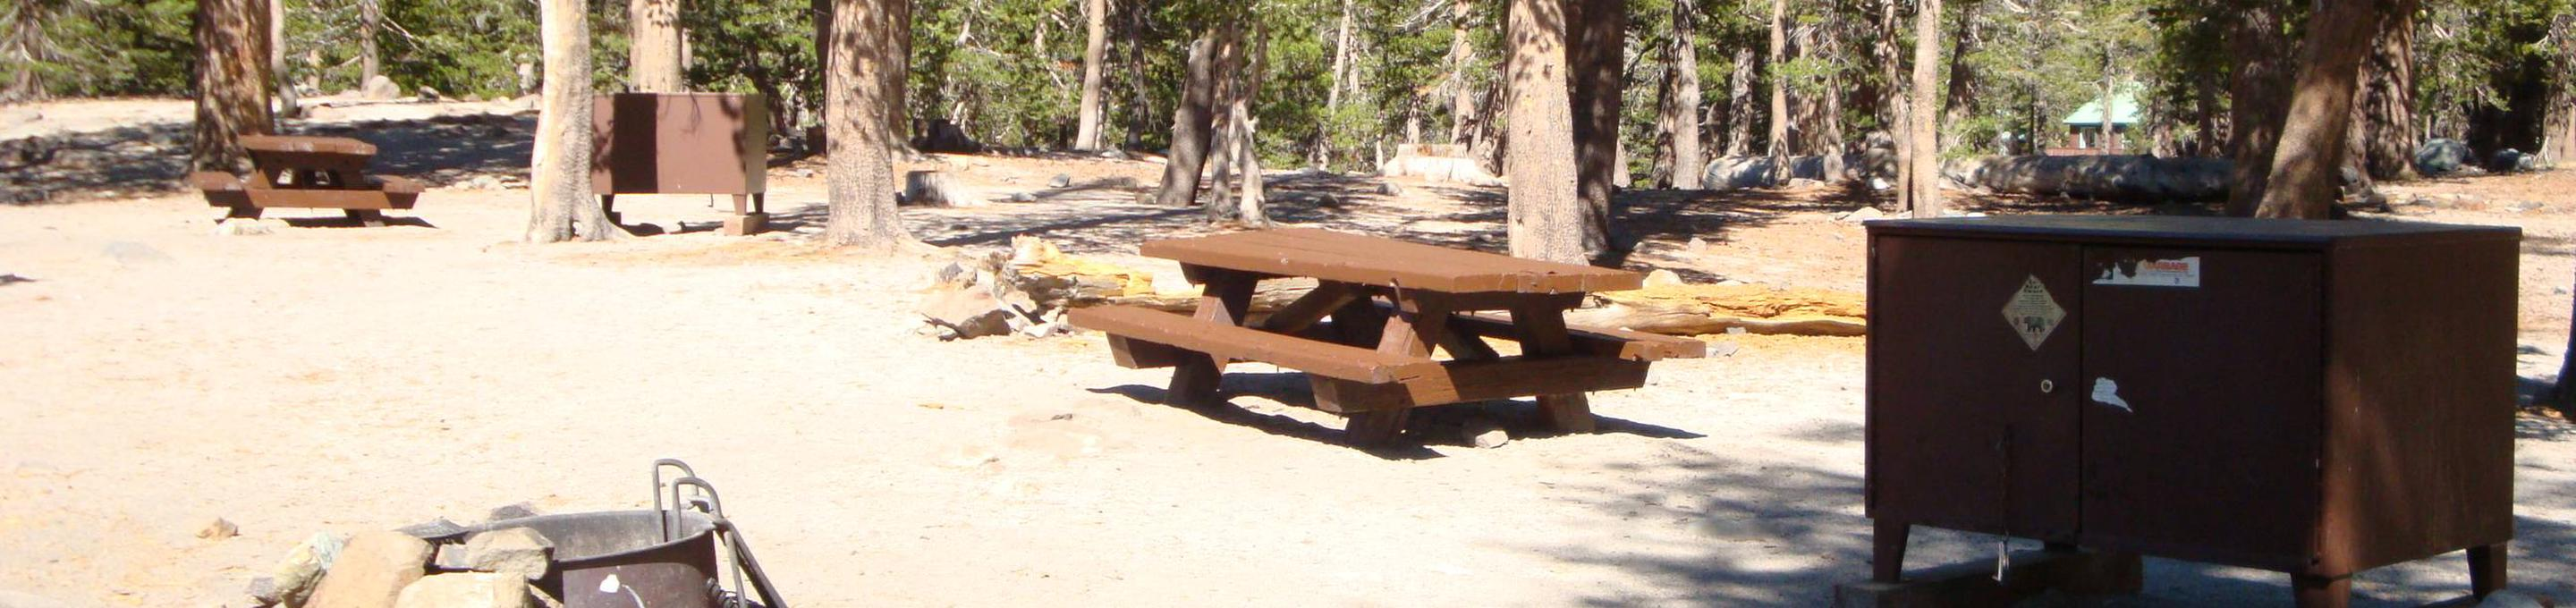 Lake Mary Campground SITE 47